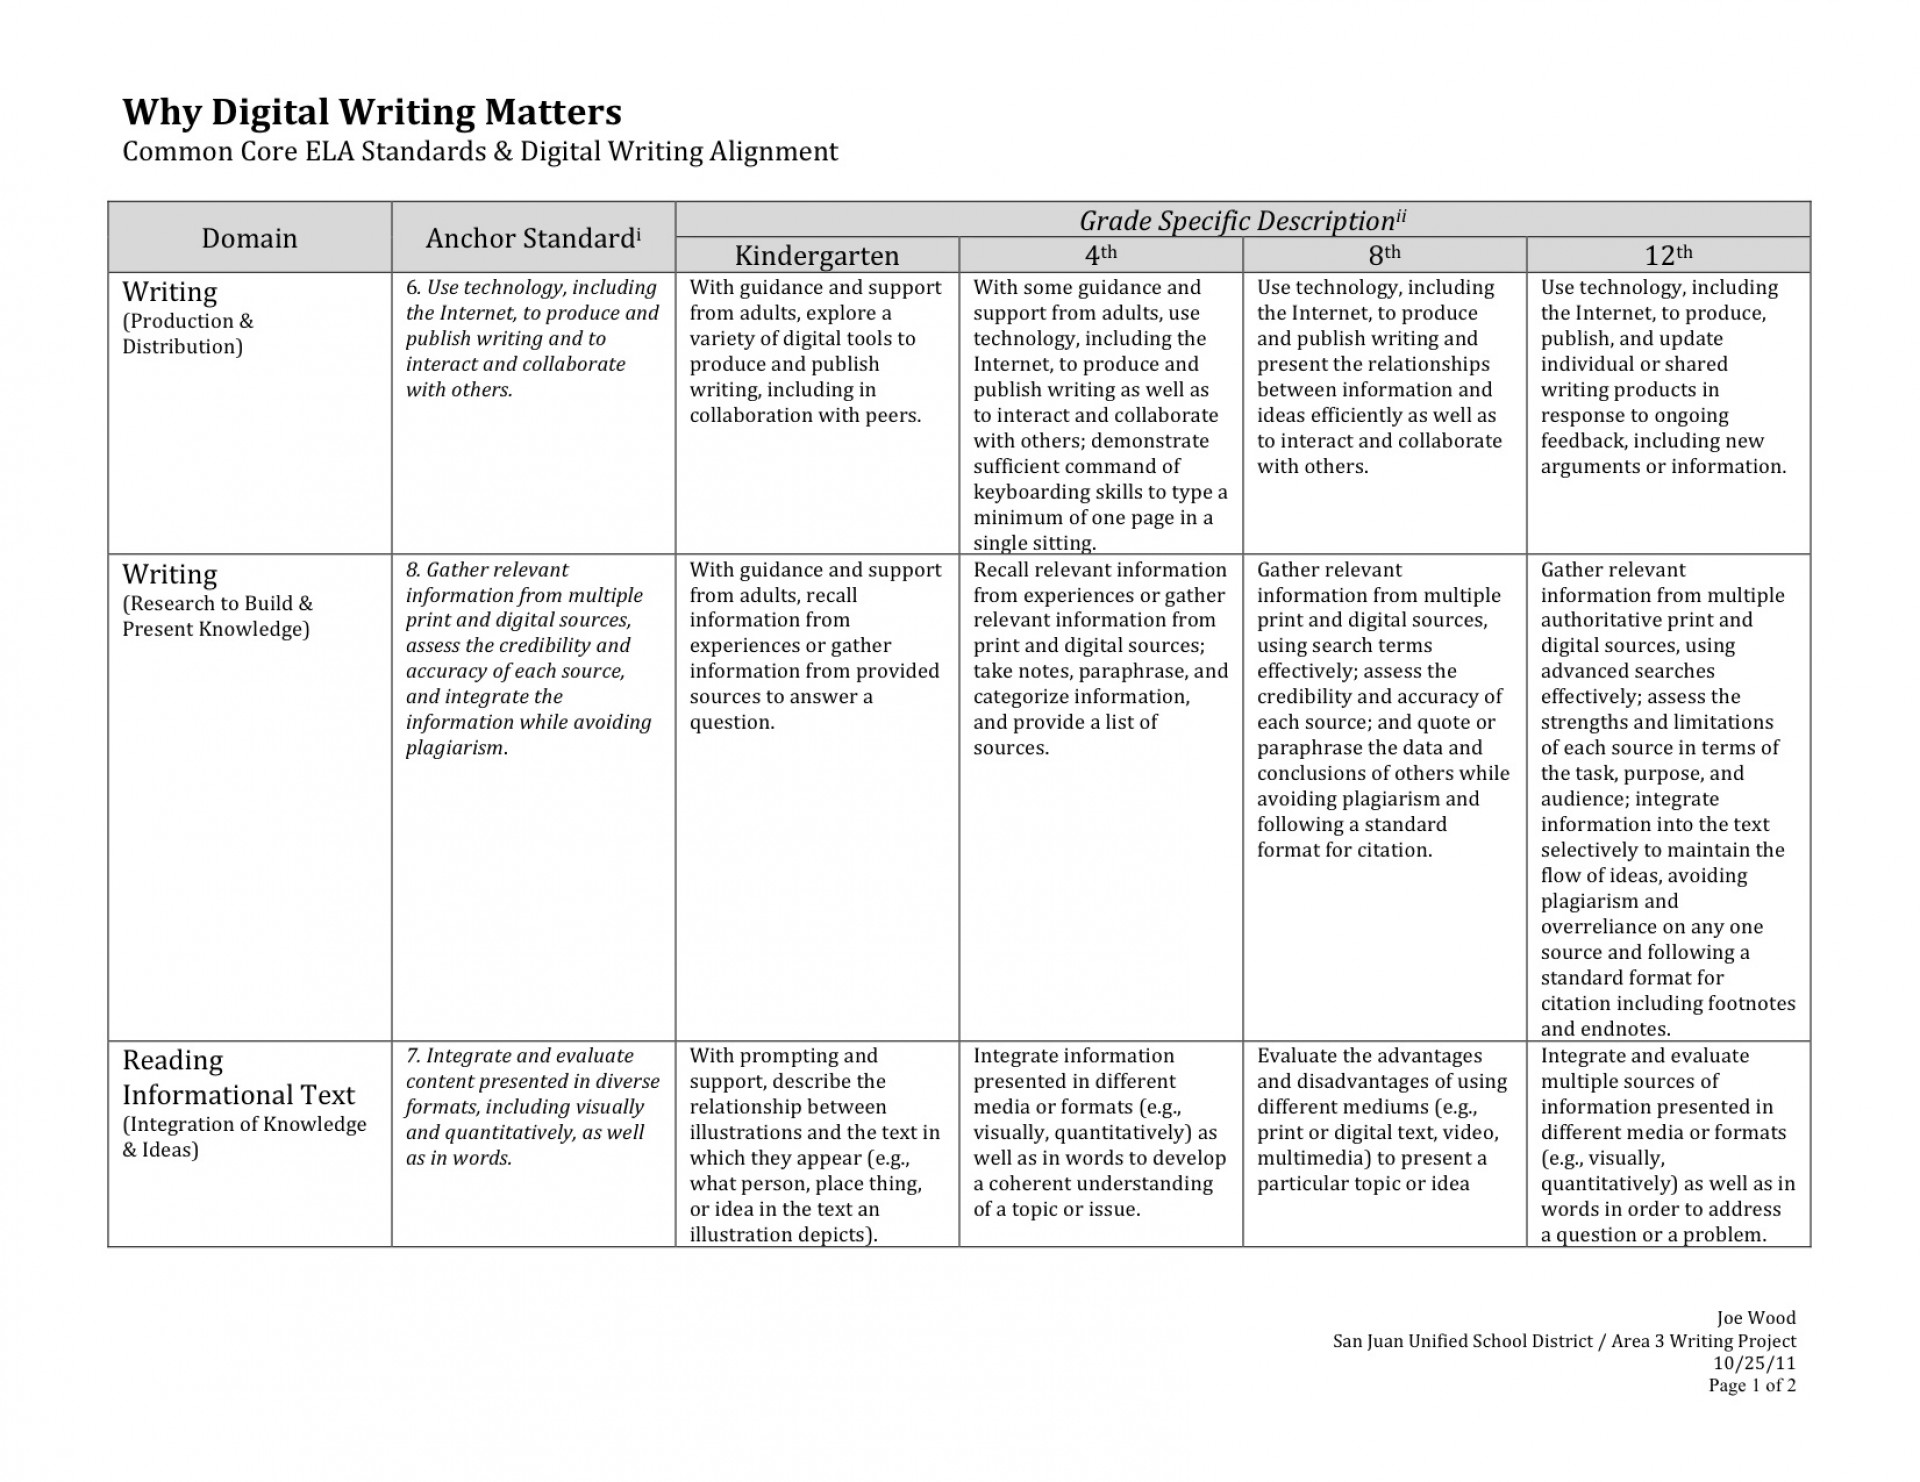 011 6th Grade Science Research Paper Rubric Why Digital Writing Matters According To The Common Core Ela Astounding 1920